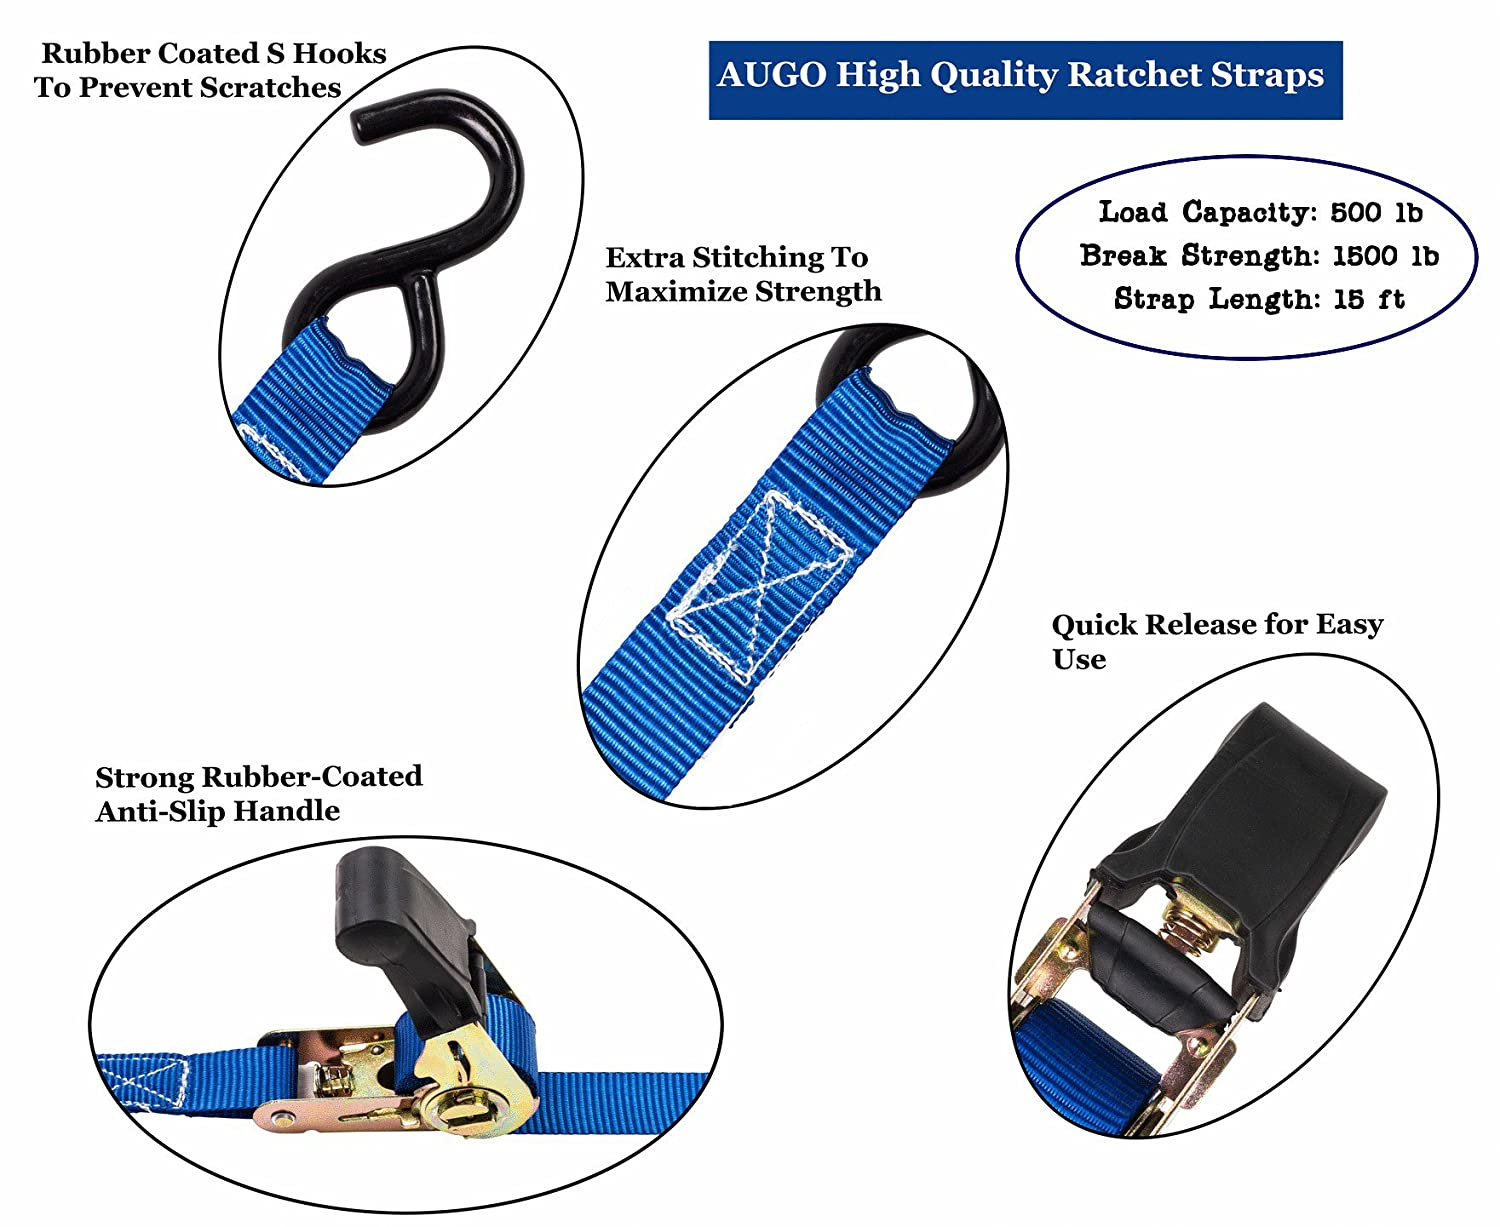 Motorcycle 4 Pk Lawn Equipment Includes 2 Bungee Cord Ratchet Tie Down Straps 15 Ft- 500 Lbs Load Cap- 1500 Lb Break Strength- Cambuckle Alternative- Cargo Straps for Moving Appliances